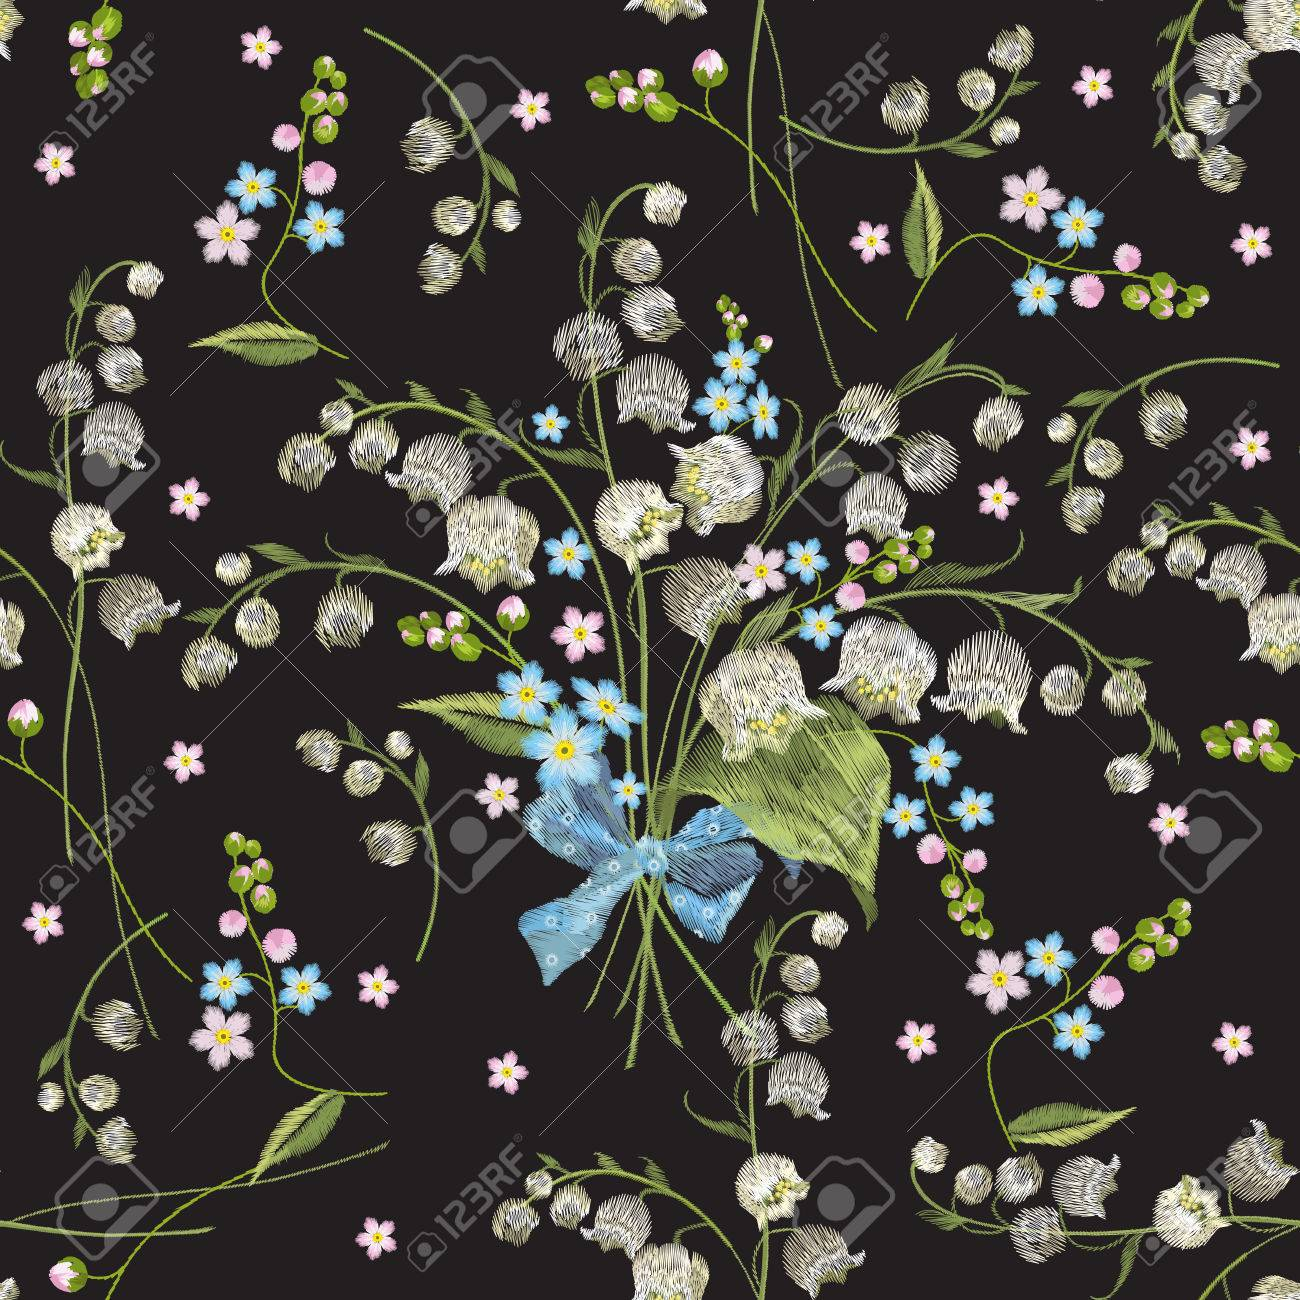 Embroidery Colorful Seamless Pattern With Lilies Of The Valley